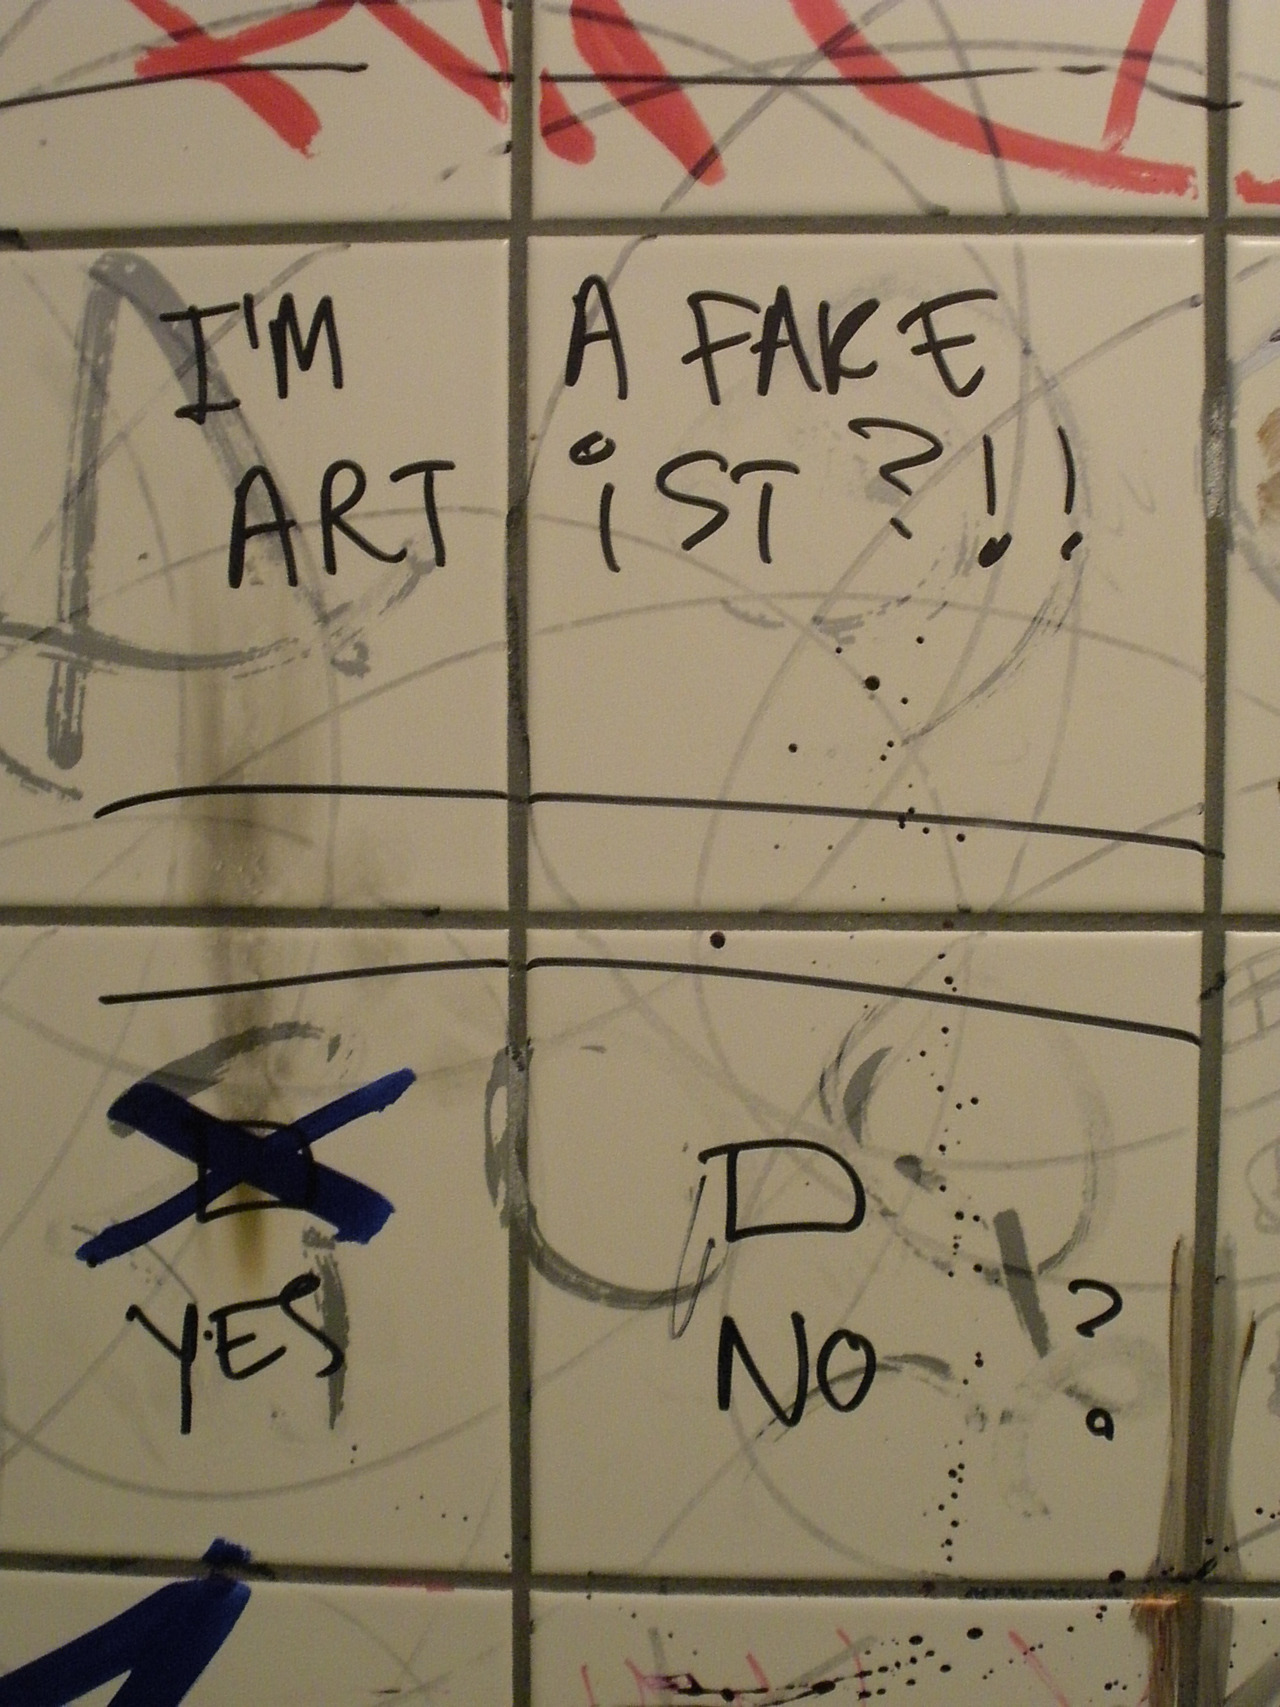 I AM A FAKE ARTIST Taken @ BAKKUS Unisex Bathroom Reykjavik, Iceland July 2010